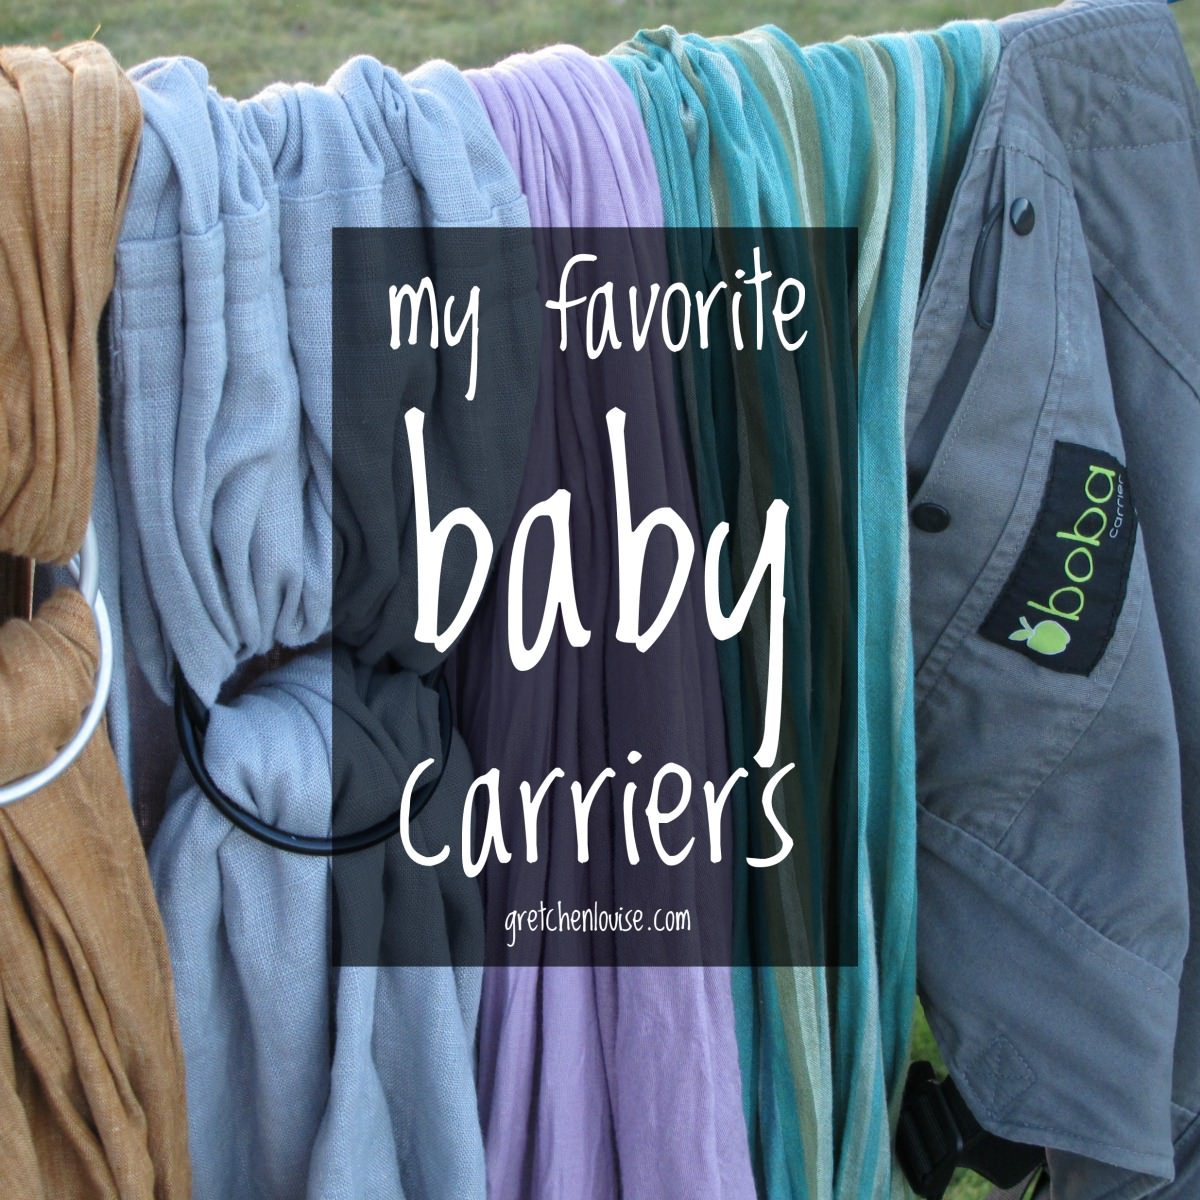 If I could pick just one baby carrier...I couldn't. Here are my favorites from my stash.